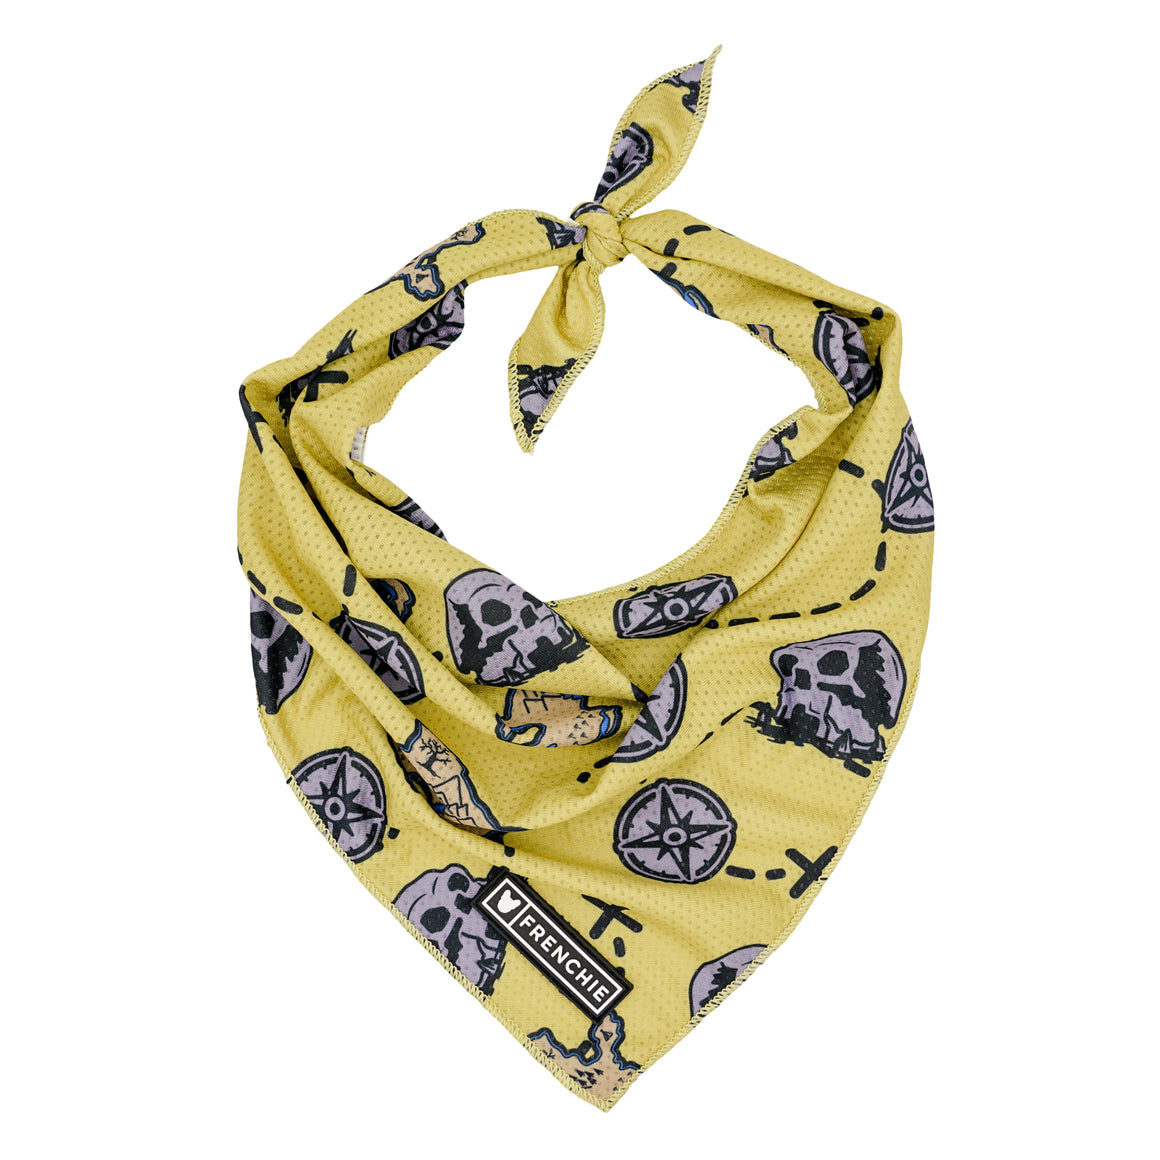 Frenchie Cooling Bandana - Pirate's Cove